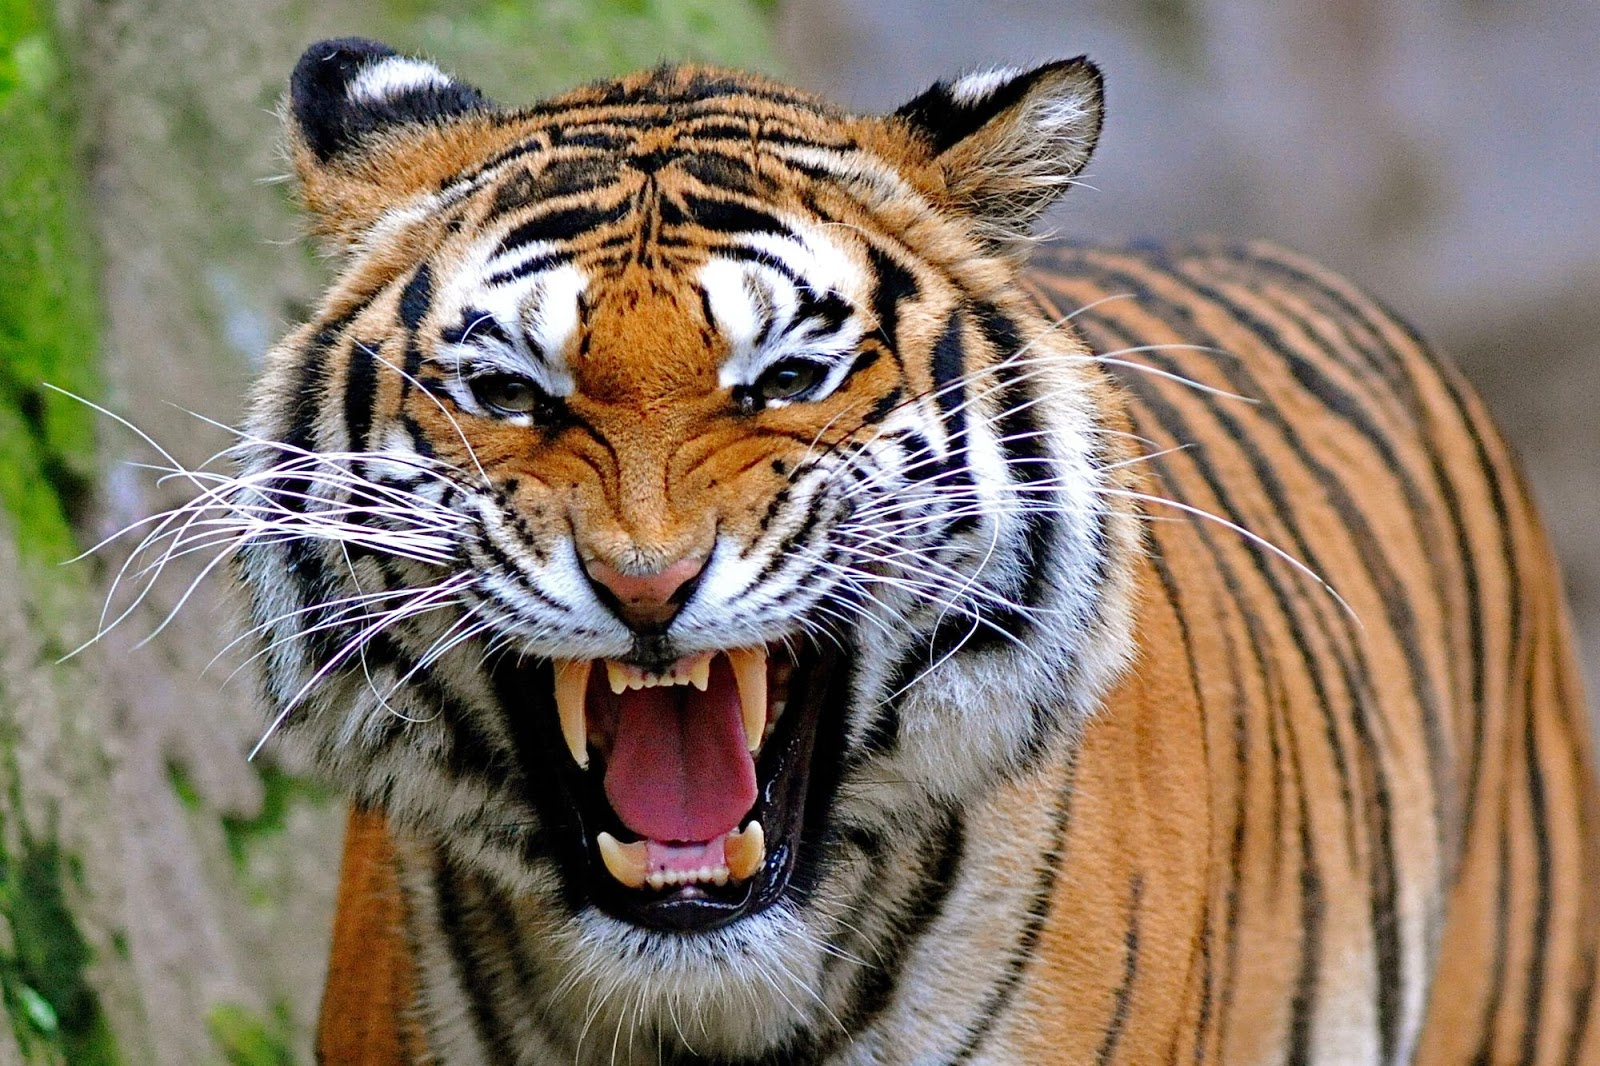 Desktop Hd Wallpapers Free Downloads Angry Tiger Hd Wallpapers